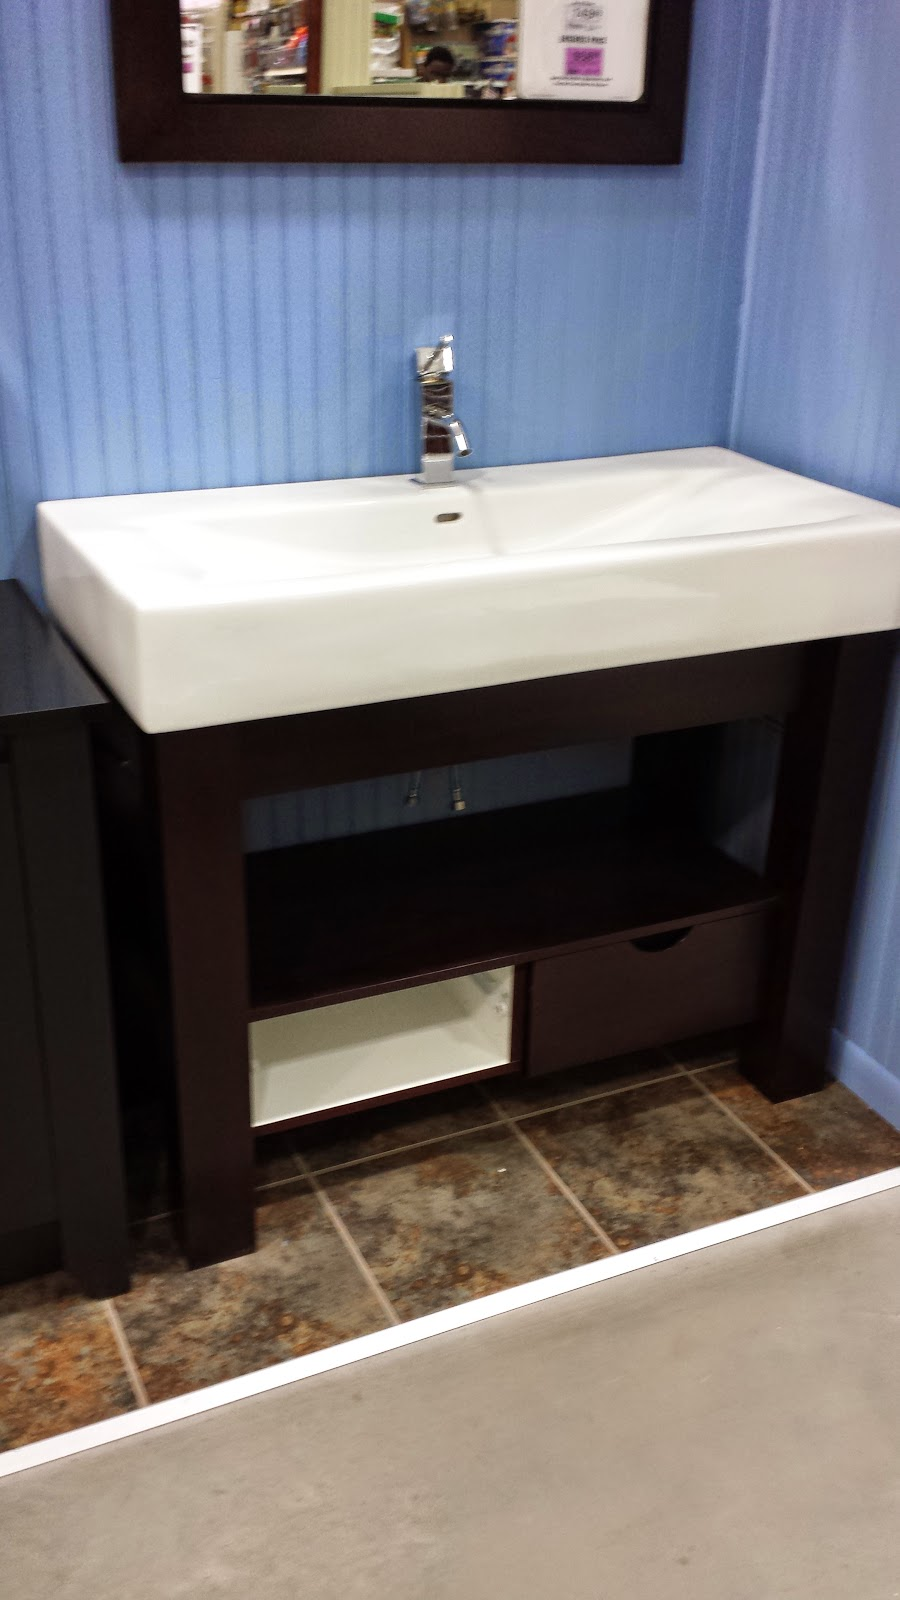 This Is Vanity Is Similar To The One Above, Has A Deeper Sink, And Covered  Storage. Size Isnu0027t An Issue Because Like Most Of The Vanities In This  Post, ...